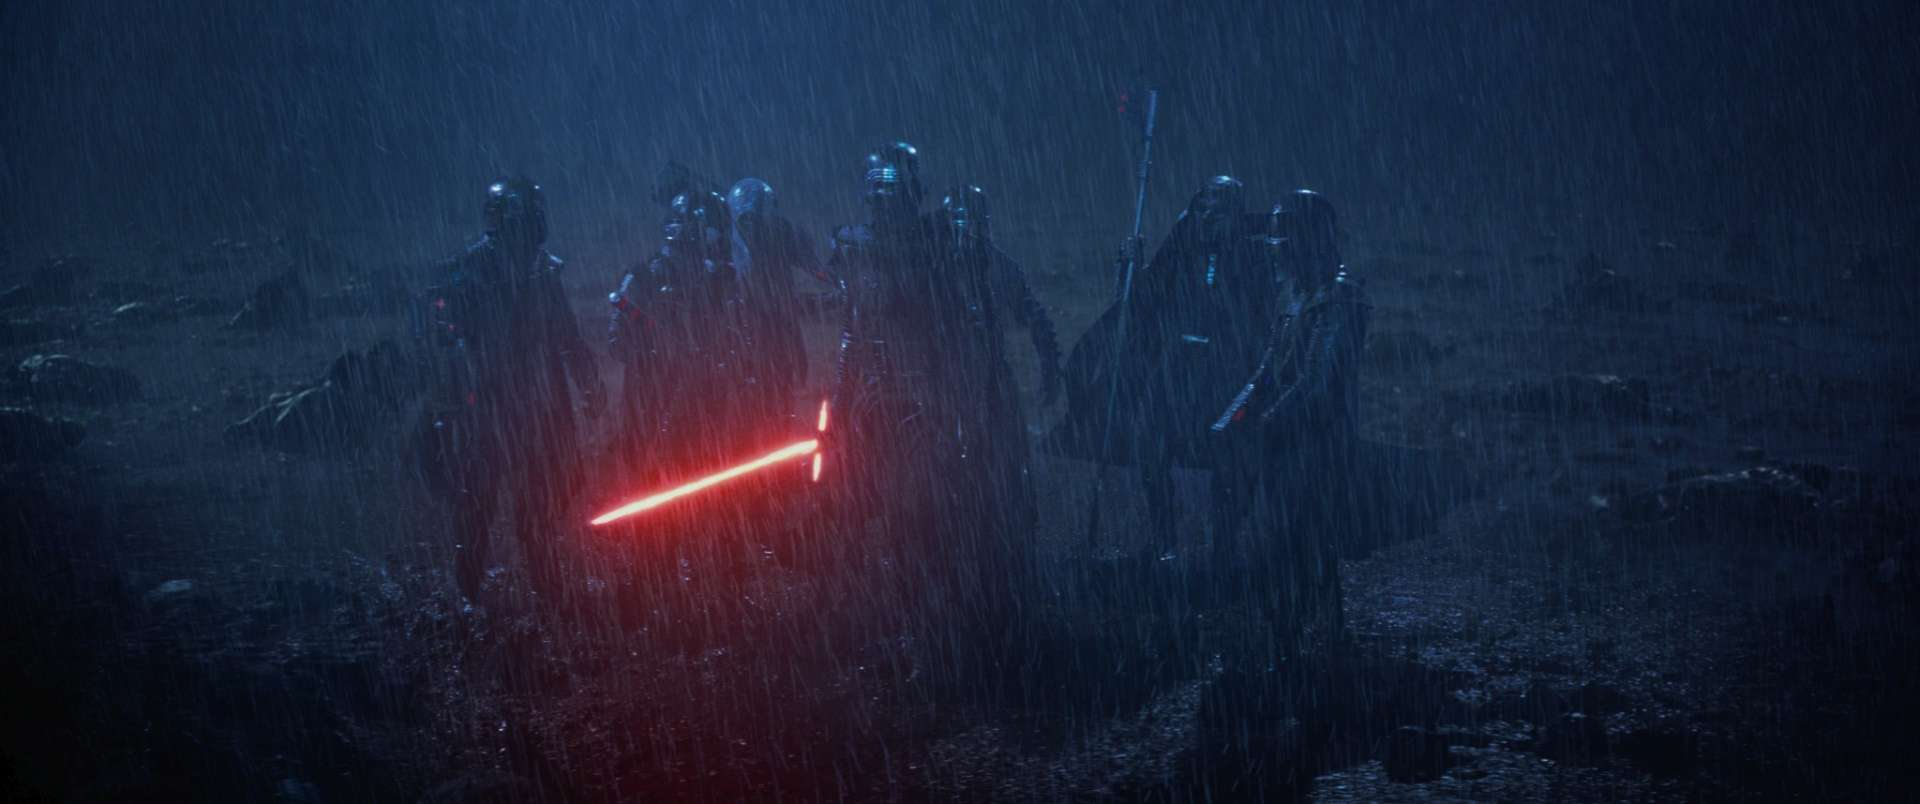 Star Wars Episode VII The Force Awakens Wallpaper 043